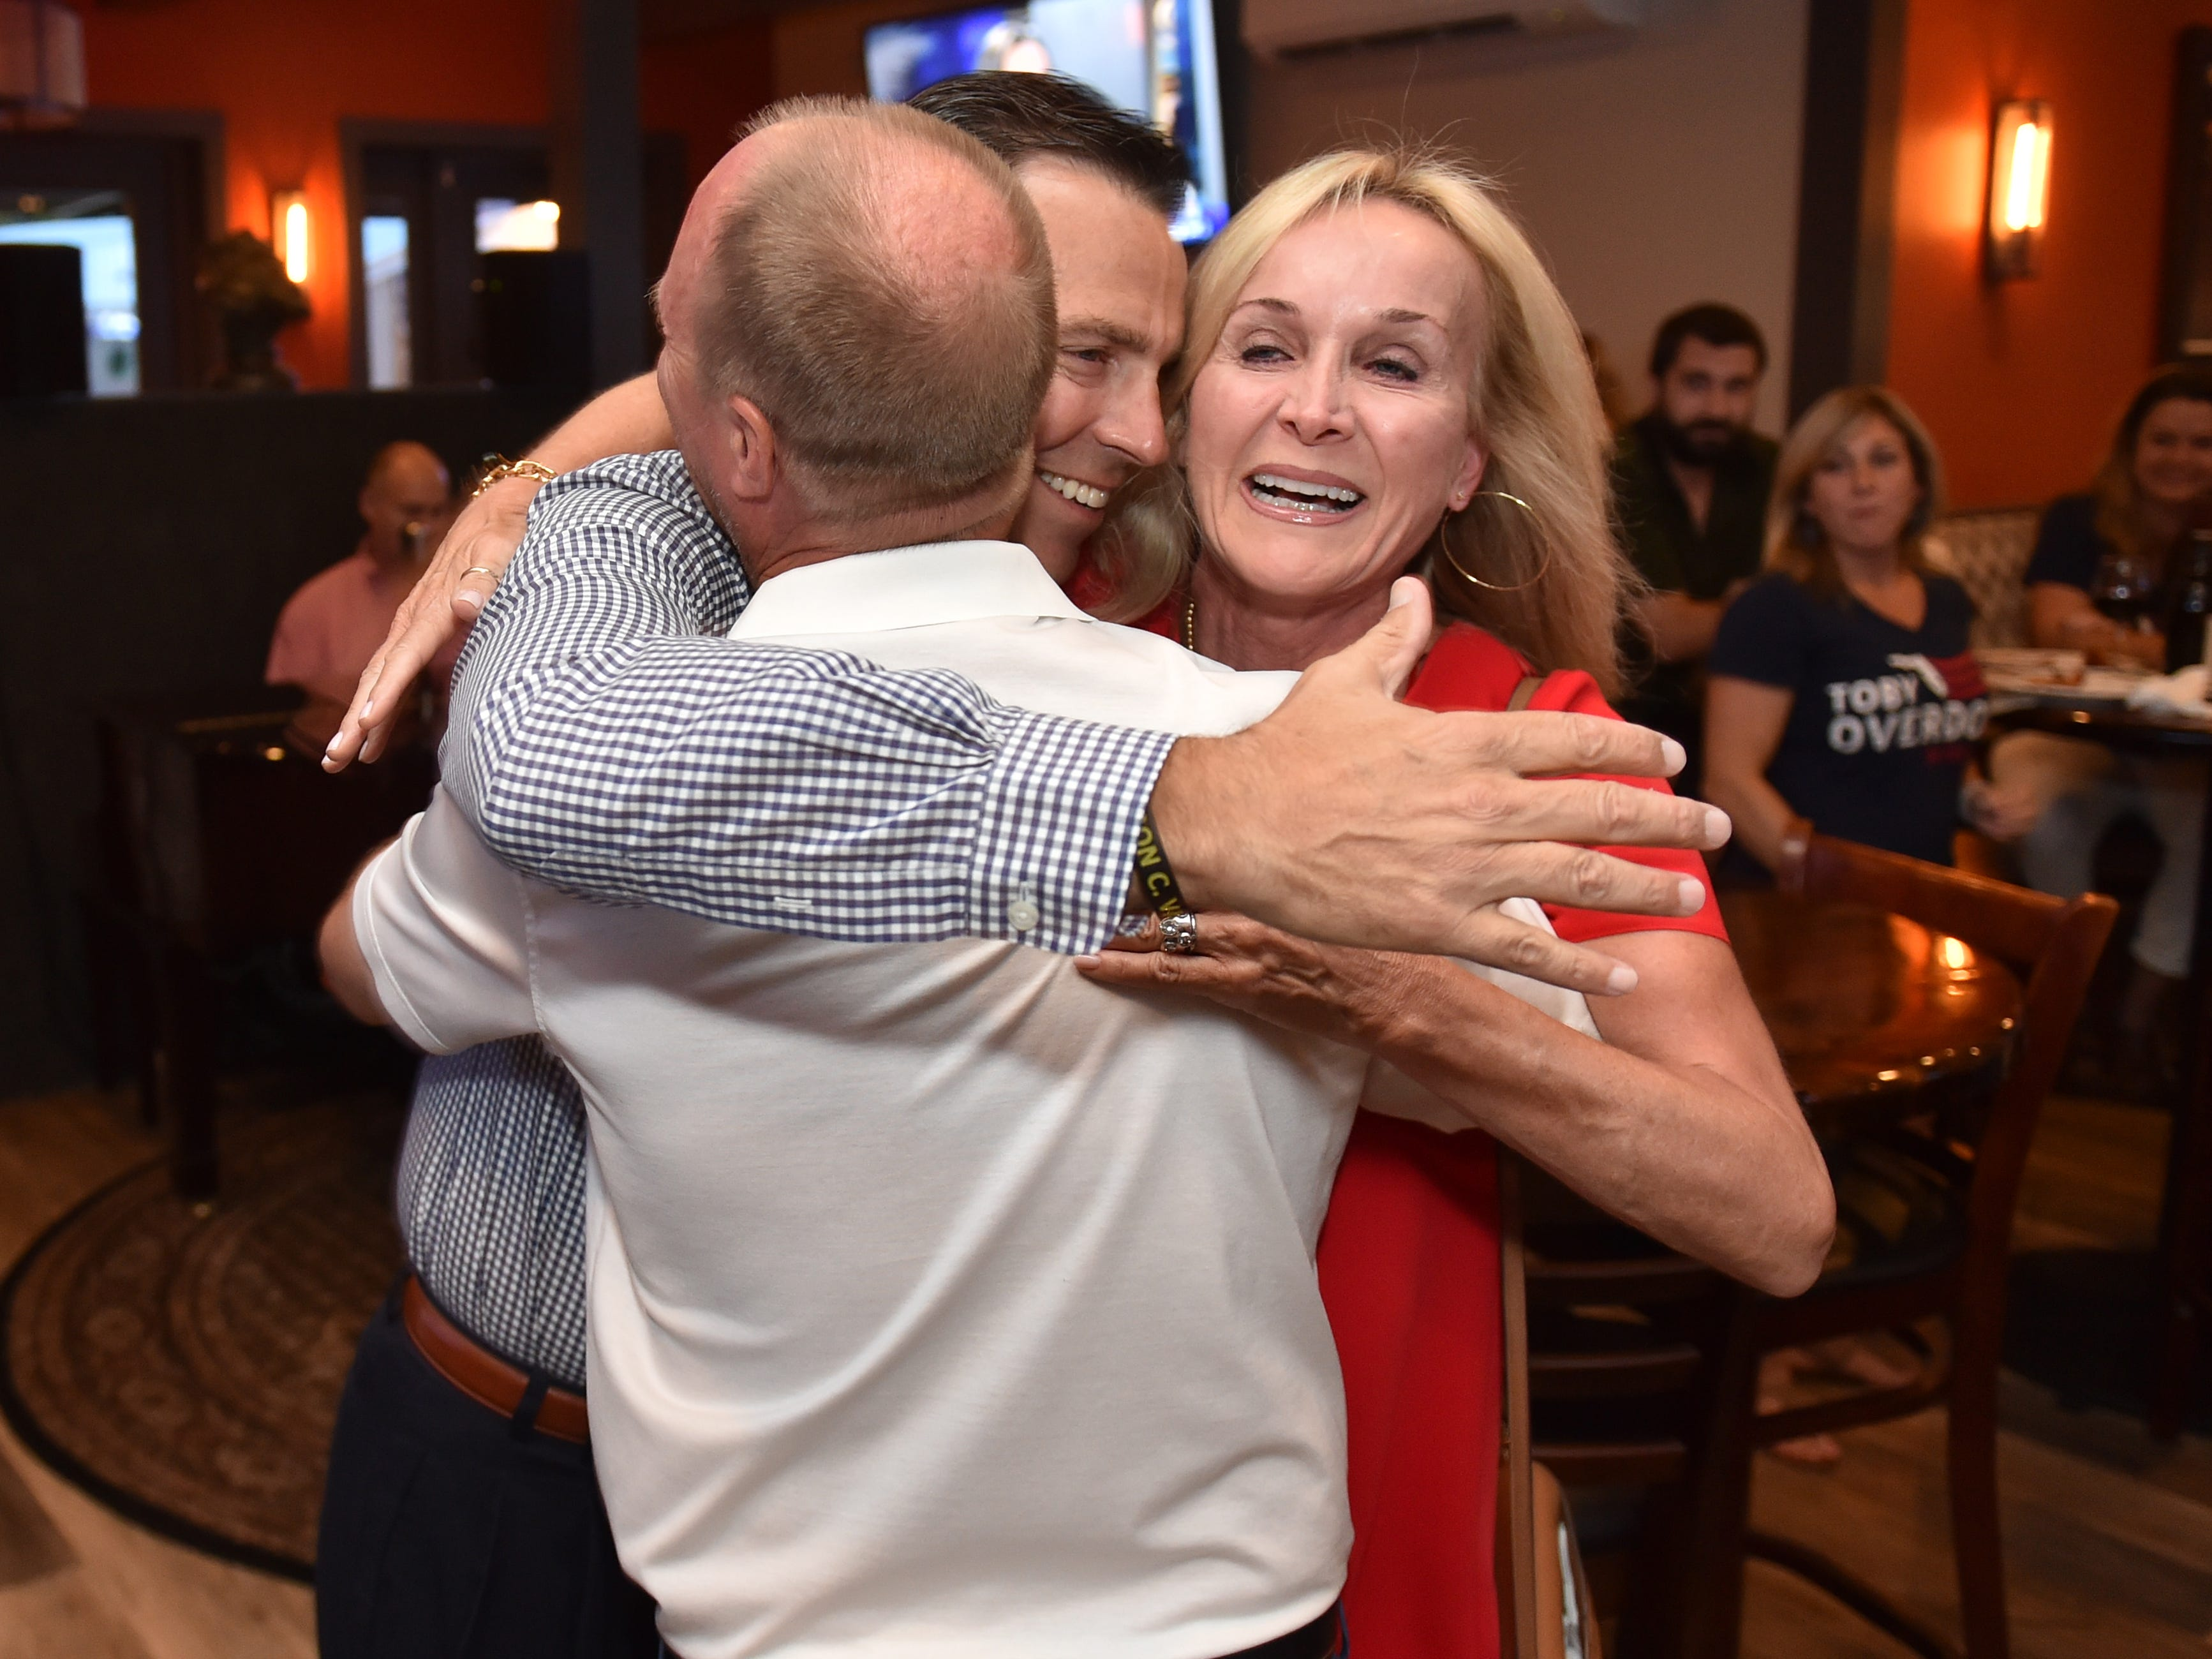 Toby Overdorf celebrates his win over Sasha Dadan in the Florida House District 83 Republican primary at the Talk House in Stuart on Tuesday, Aug. 28, 2018. Overdorf will face Democrat Matt Theobald, a Jensen Beach teacher, in the Nov. 6 general election for the two-year seat that represents parts of Martin and St. Lucie counties, currently held by Republican Rep. Gayle Harrell.